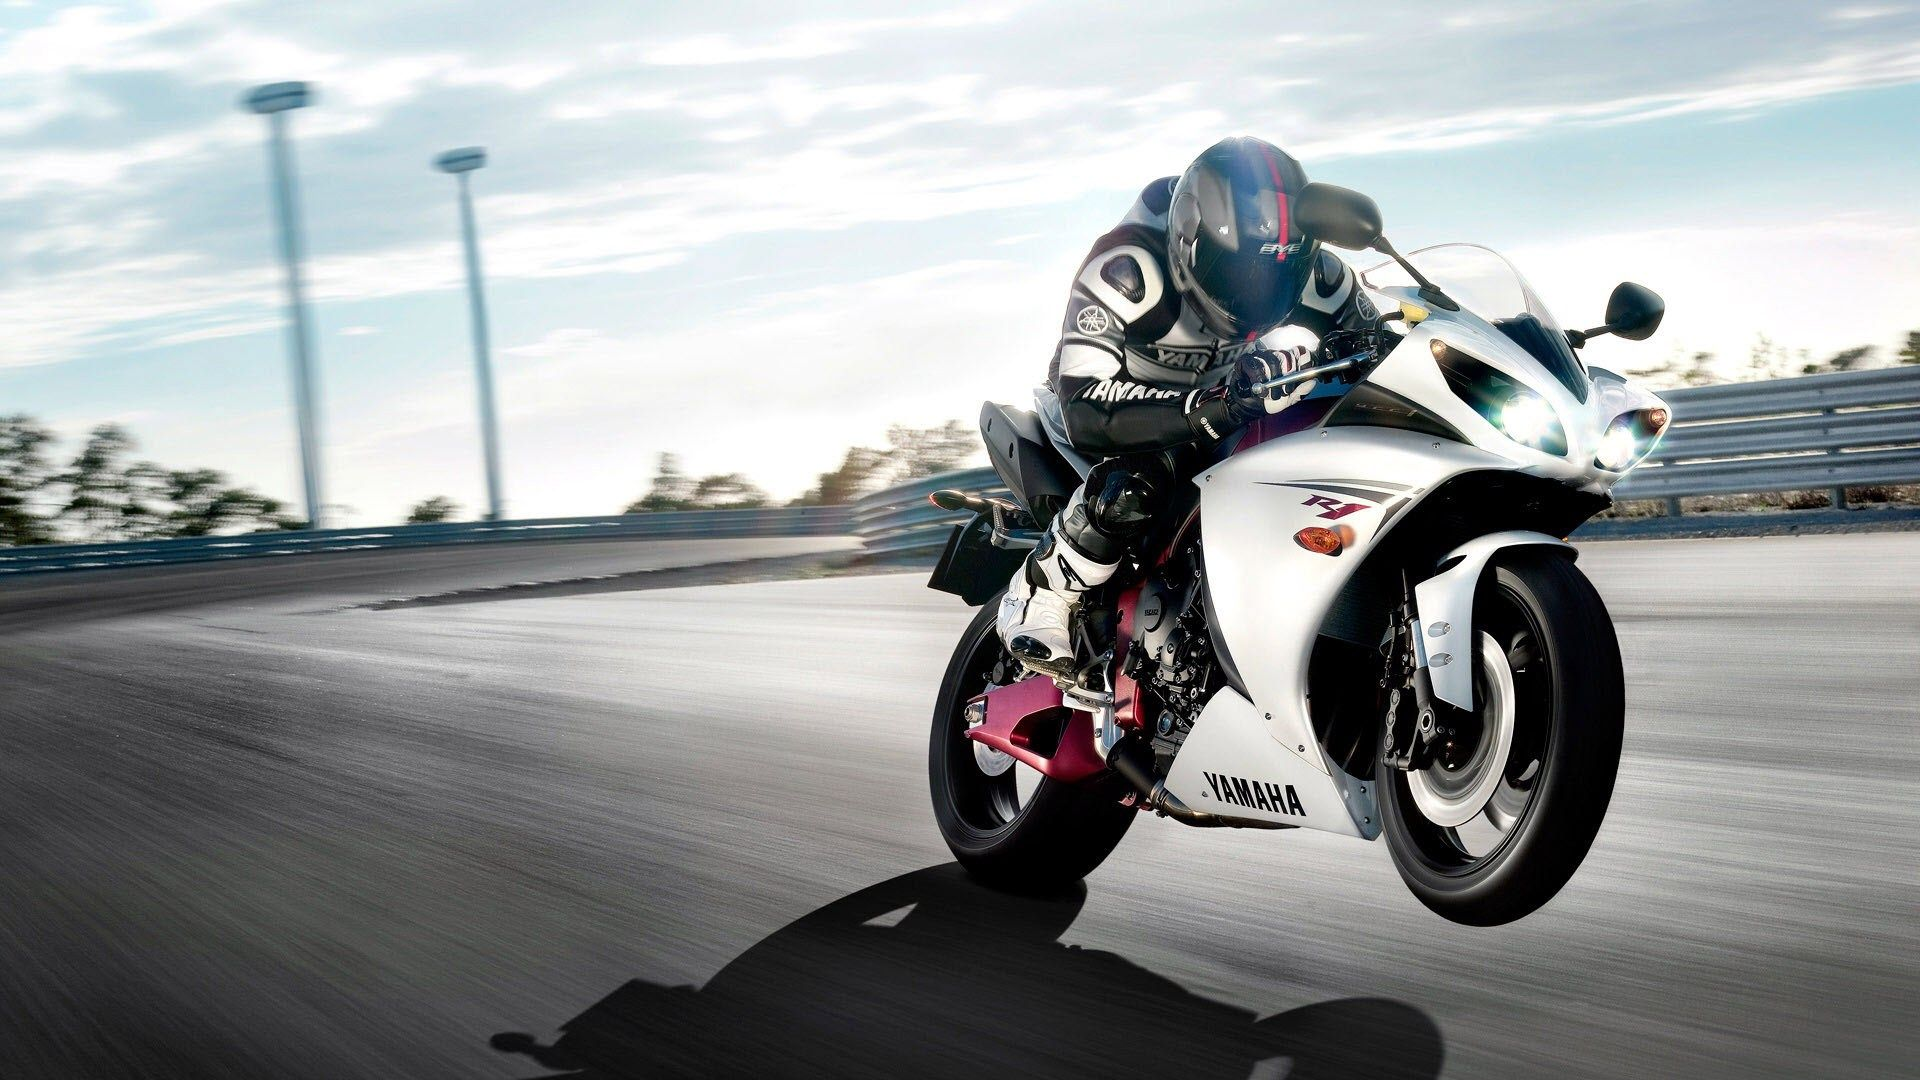 Great-Motorcycle-and-super-bikes-heavy-bikes-wallpapers-26 ...